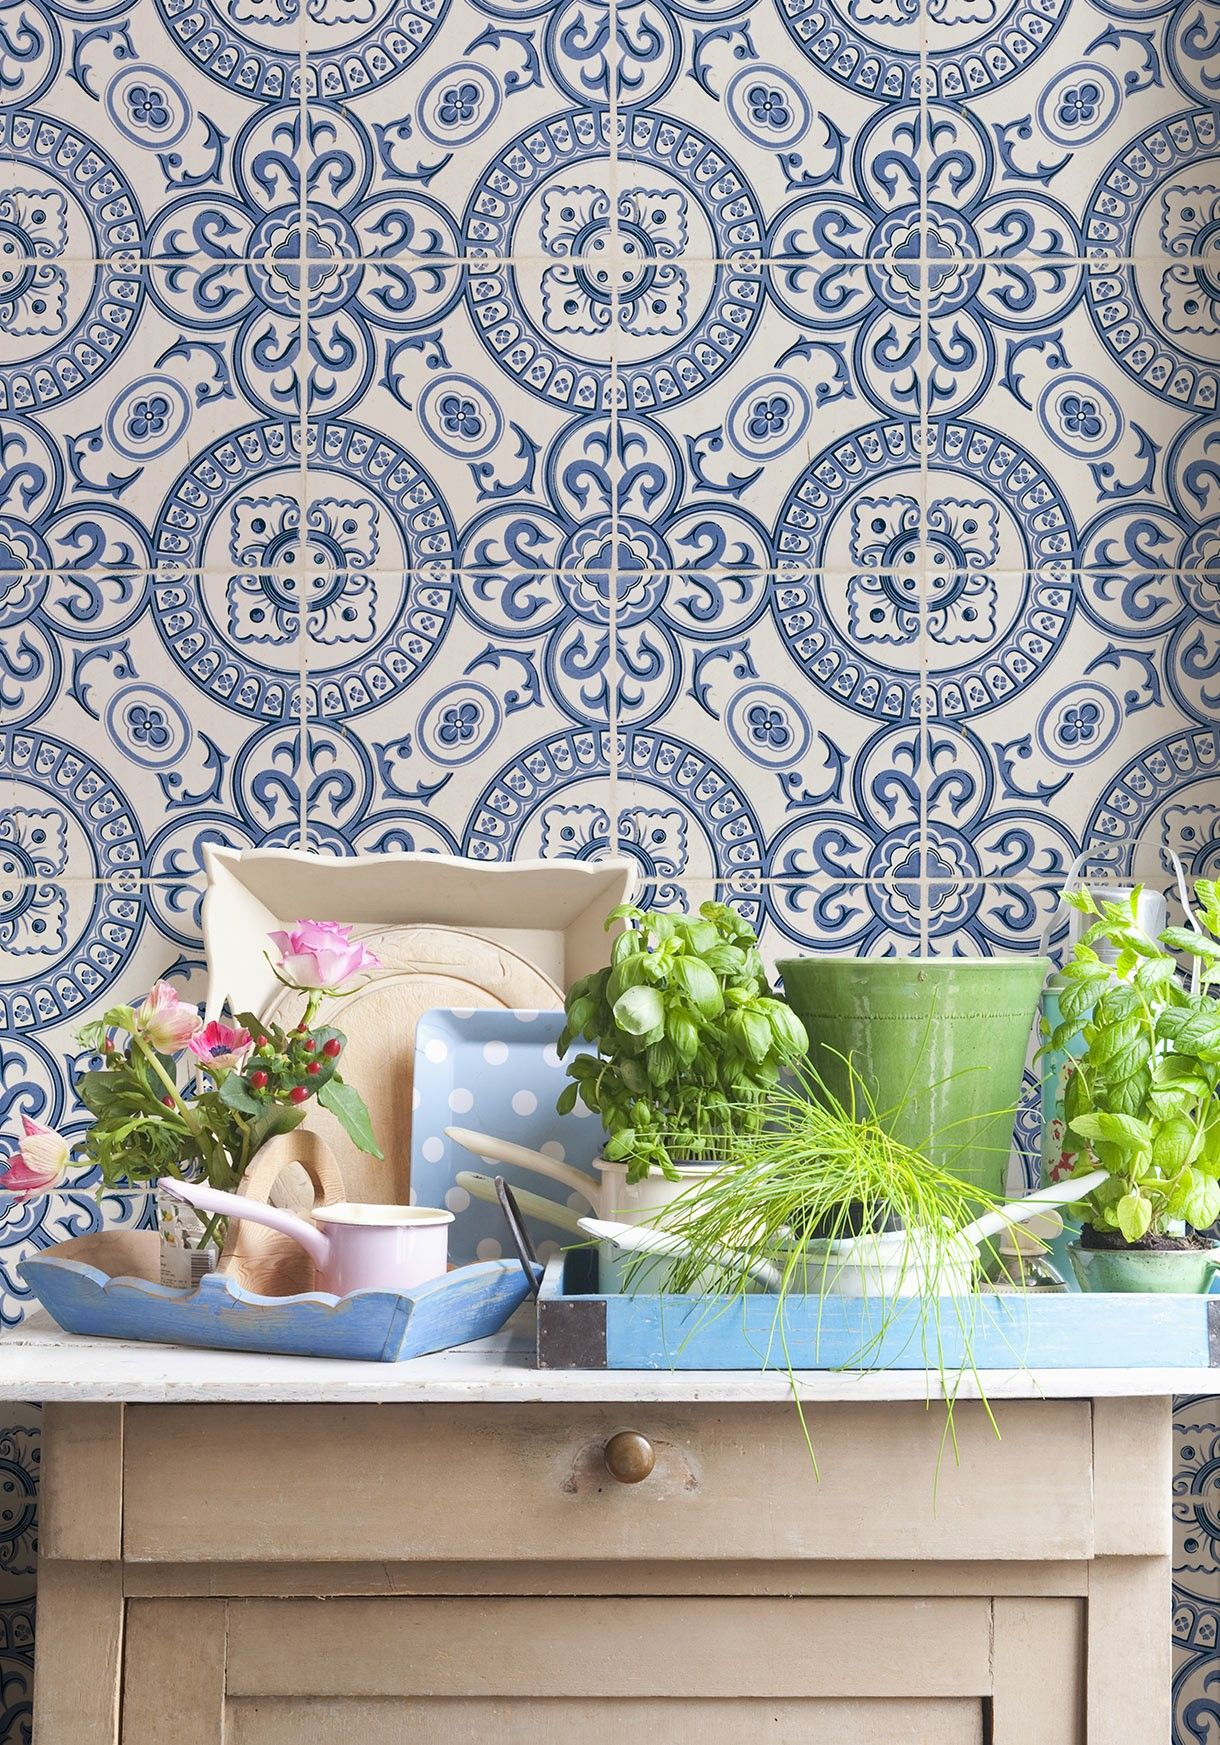 Pin By Hildie Westie On Wallpaper Ideas In 2021 Tile Wallpaper French Style Decor Faux Tiles